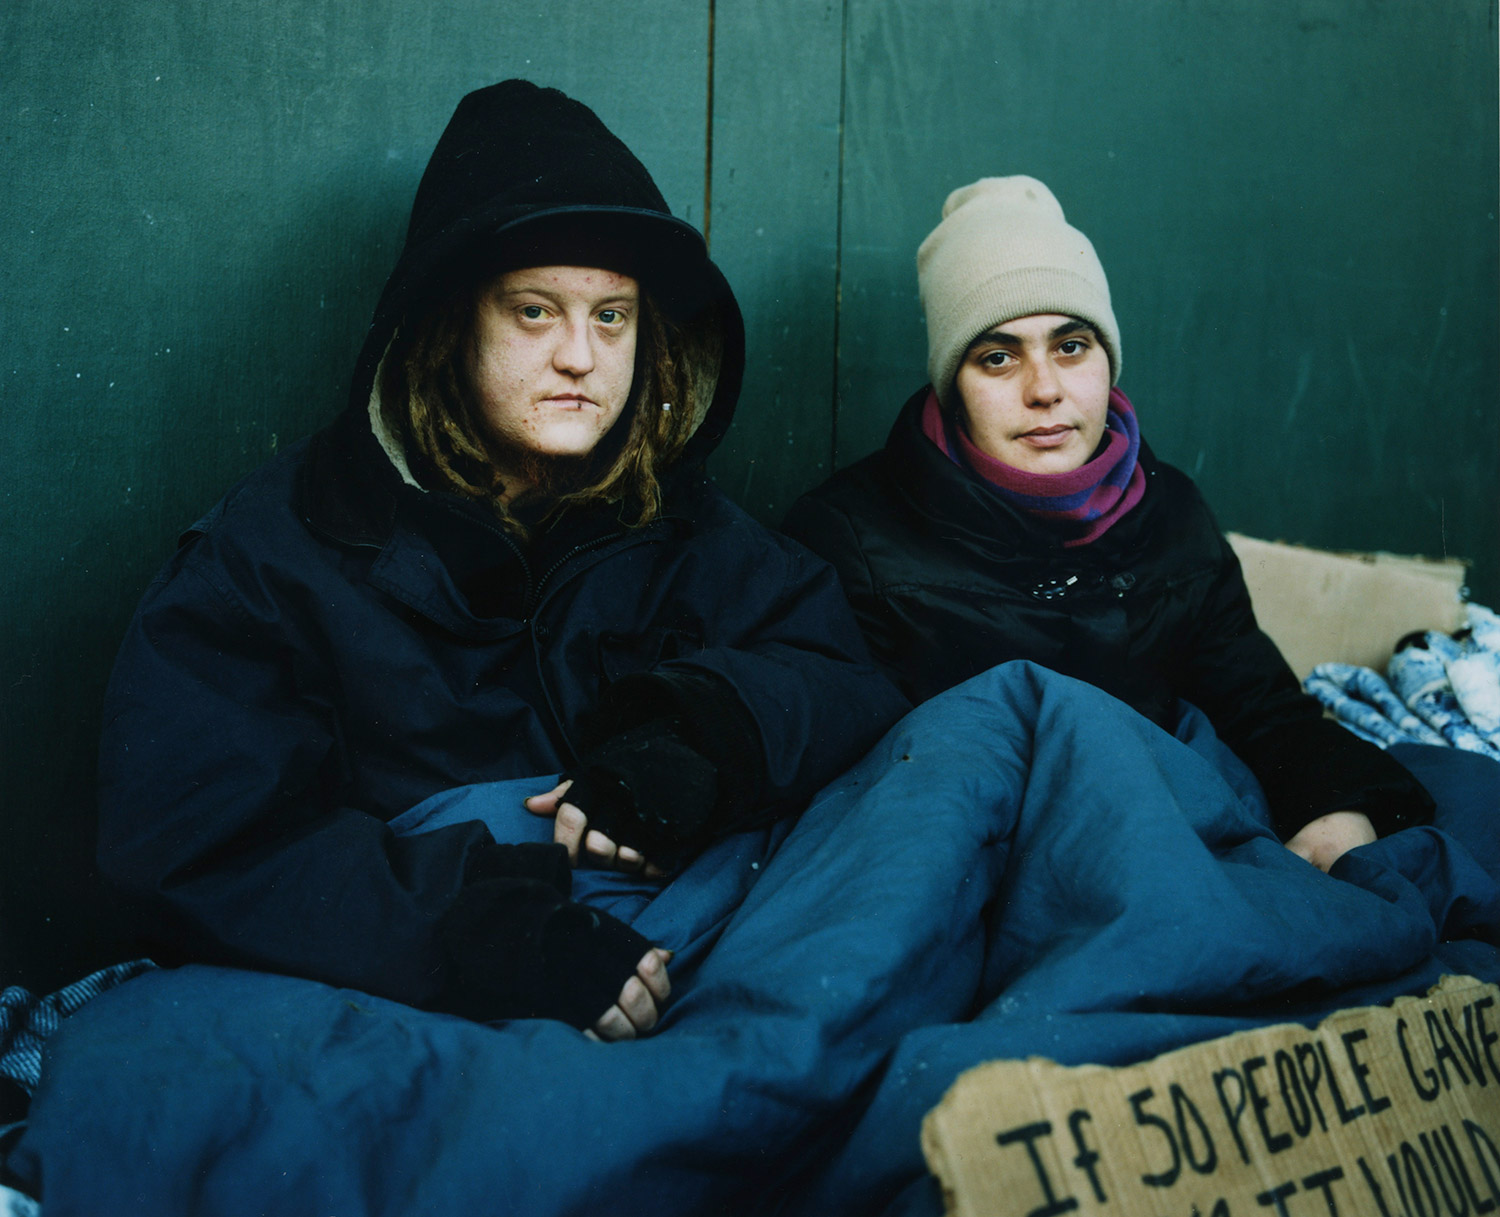 Shelly Corncetta McMahon and Ryan McMahon, from Andres Serrano's Residents of New York project